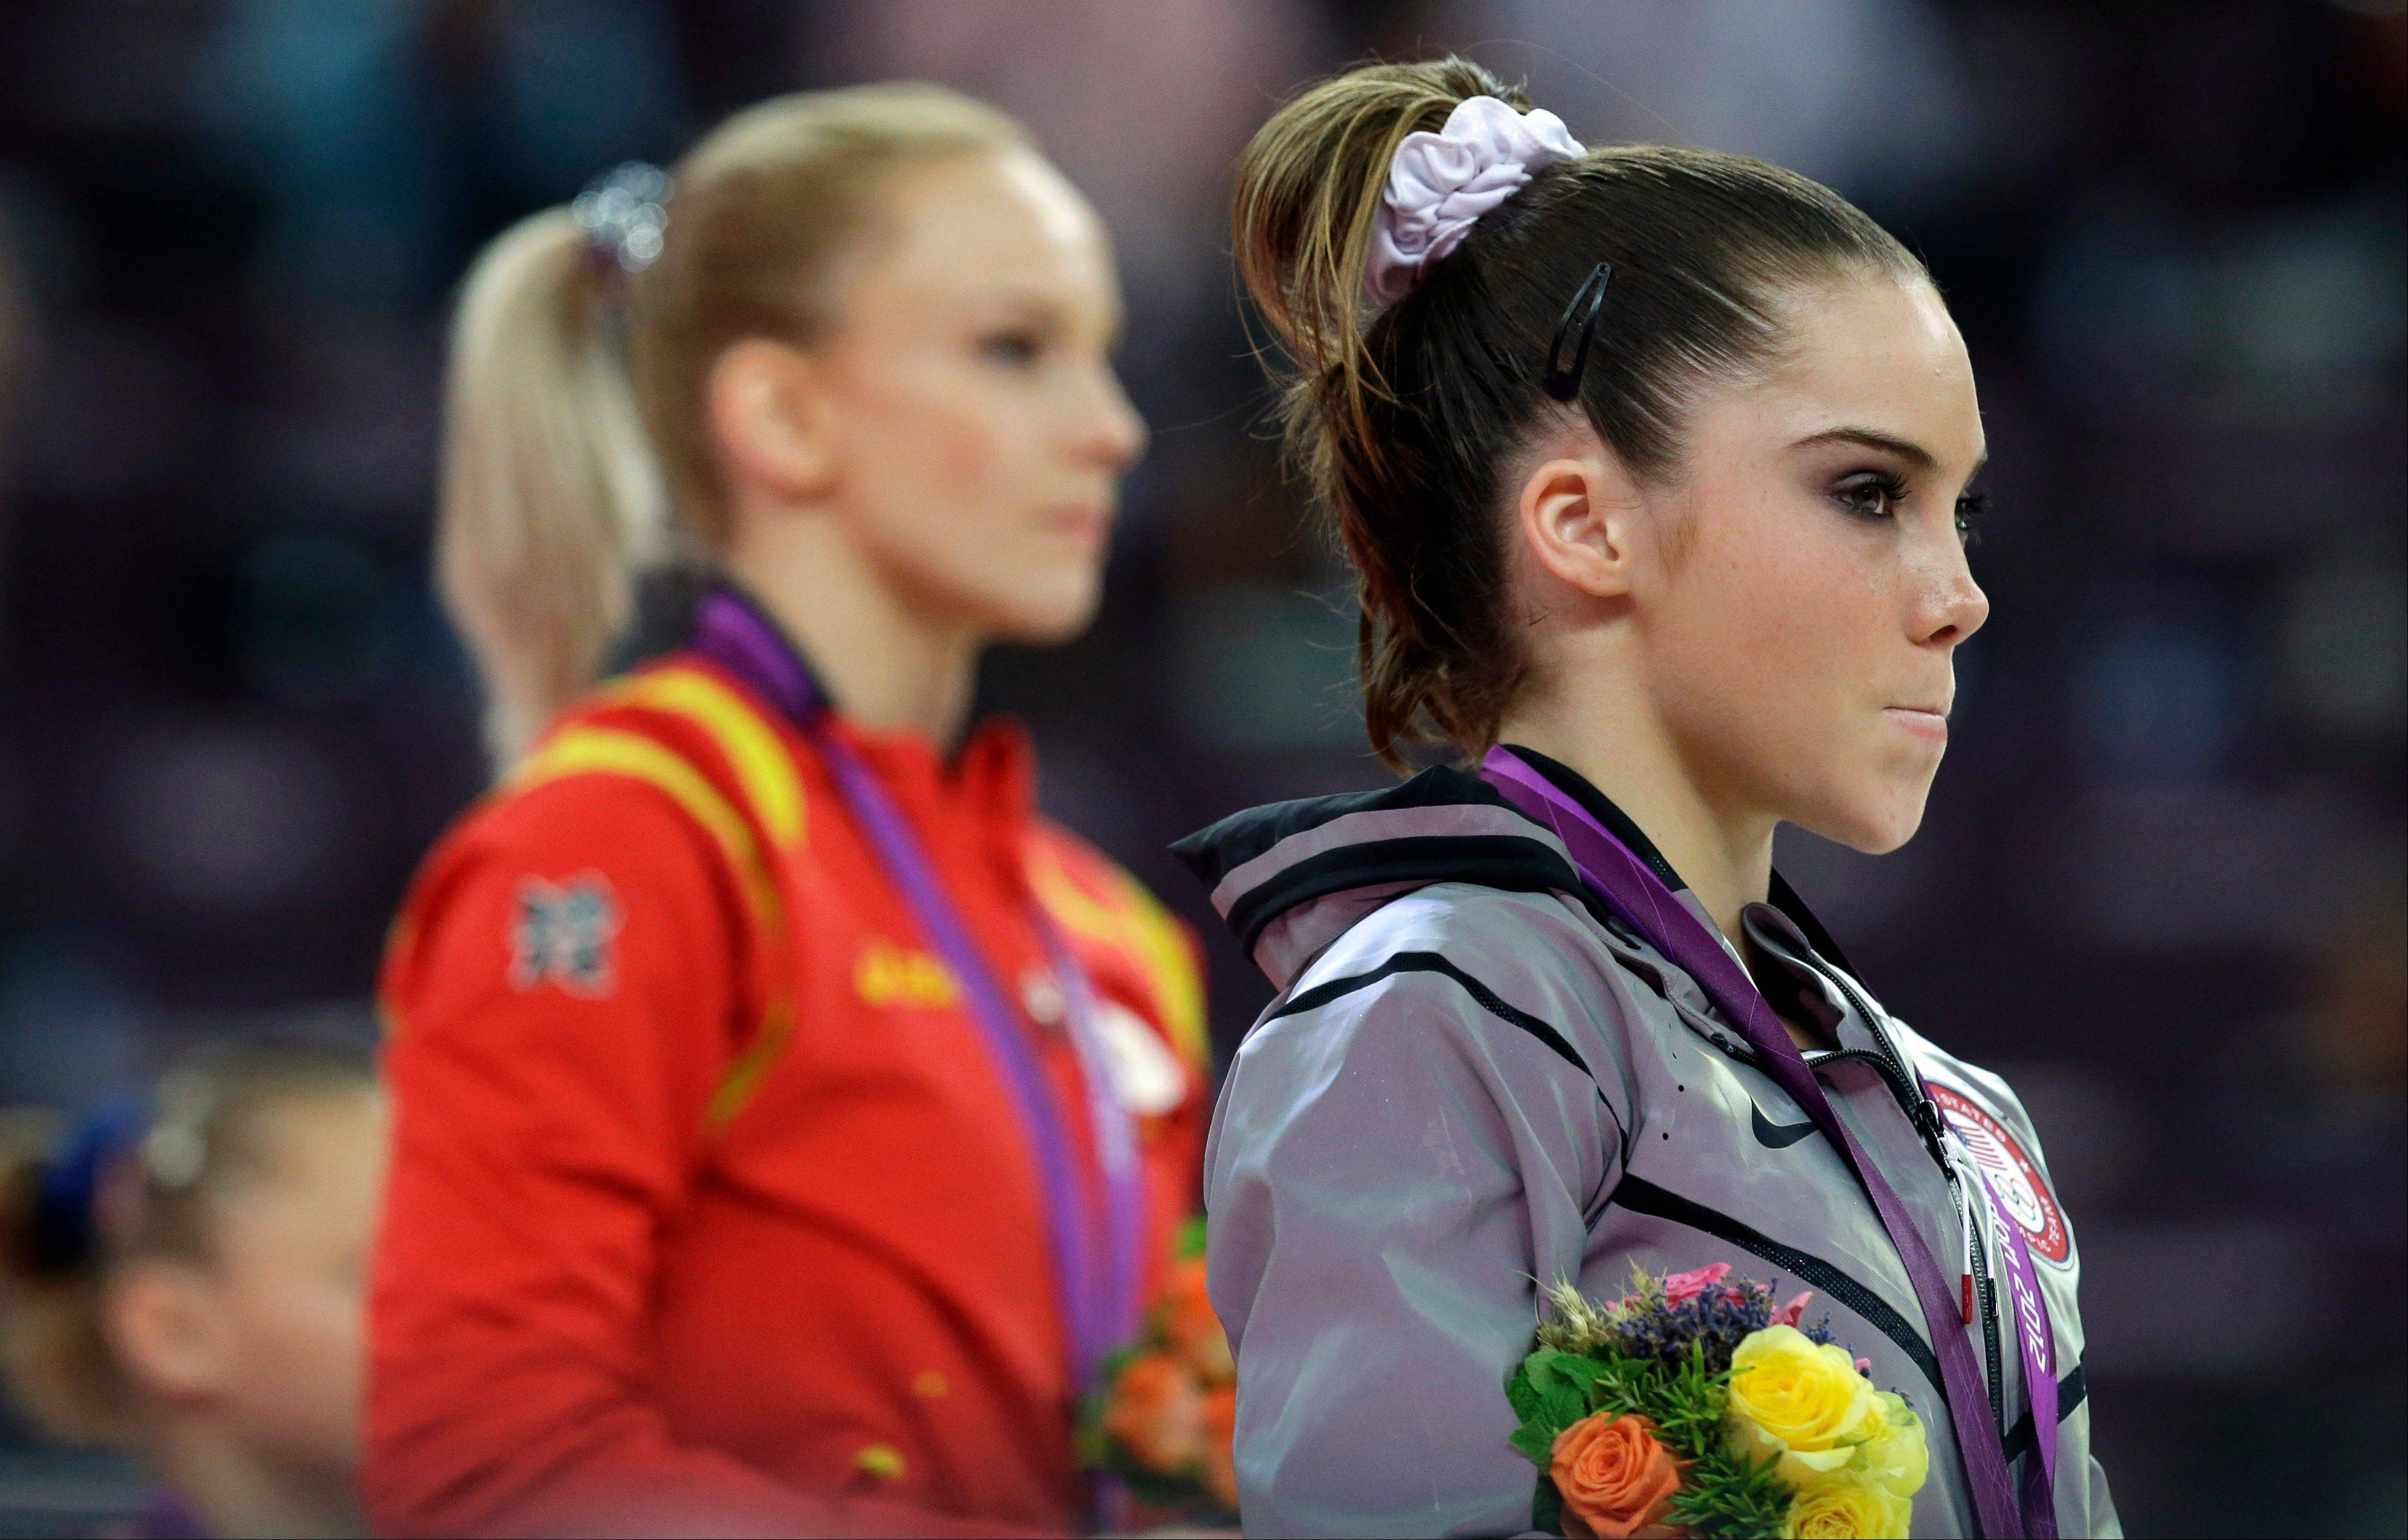 Silver medalist McKayla Maroney, right, stands with gold medalist Sandra Raluca Izbasa of Romania during the podium ceremony for women's vault finals at the 2012 Summer Olympics in London.